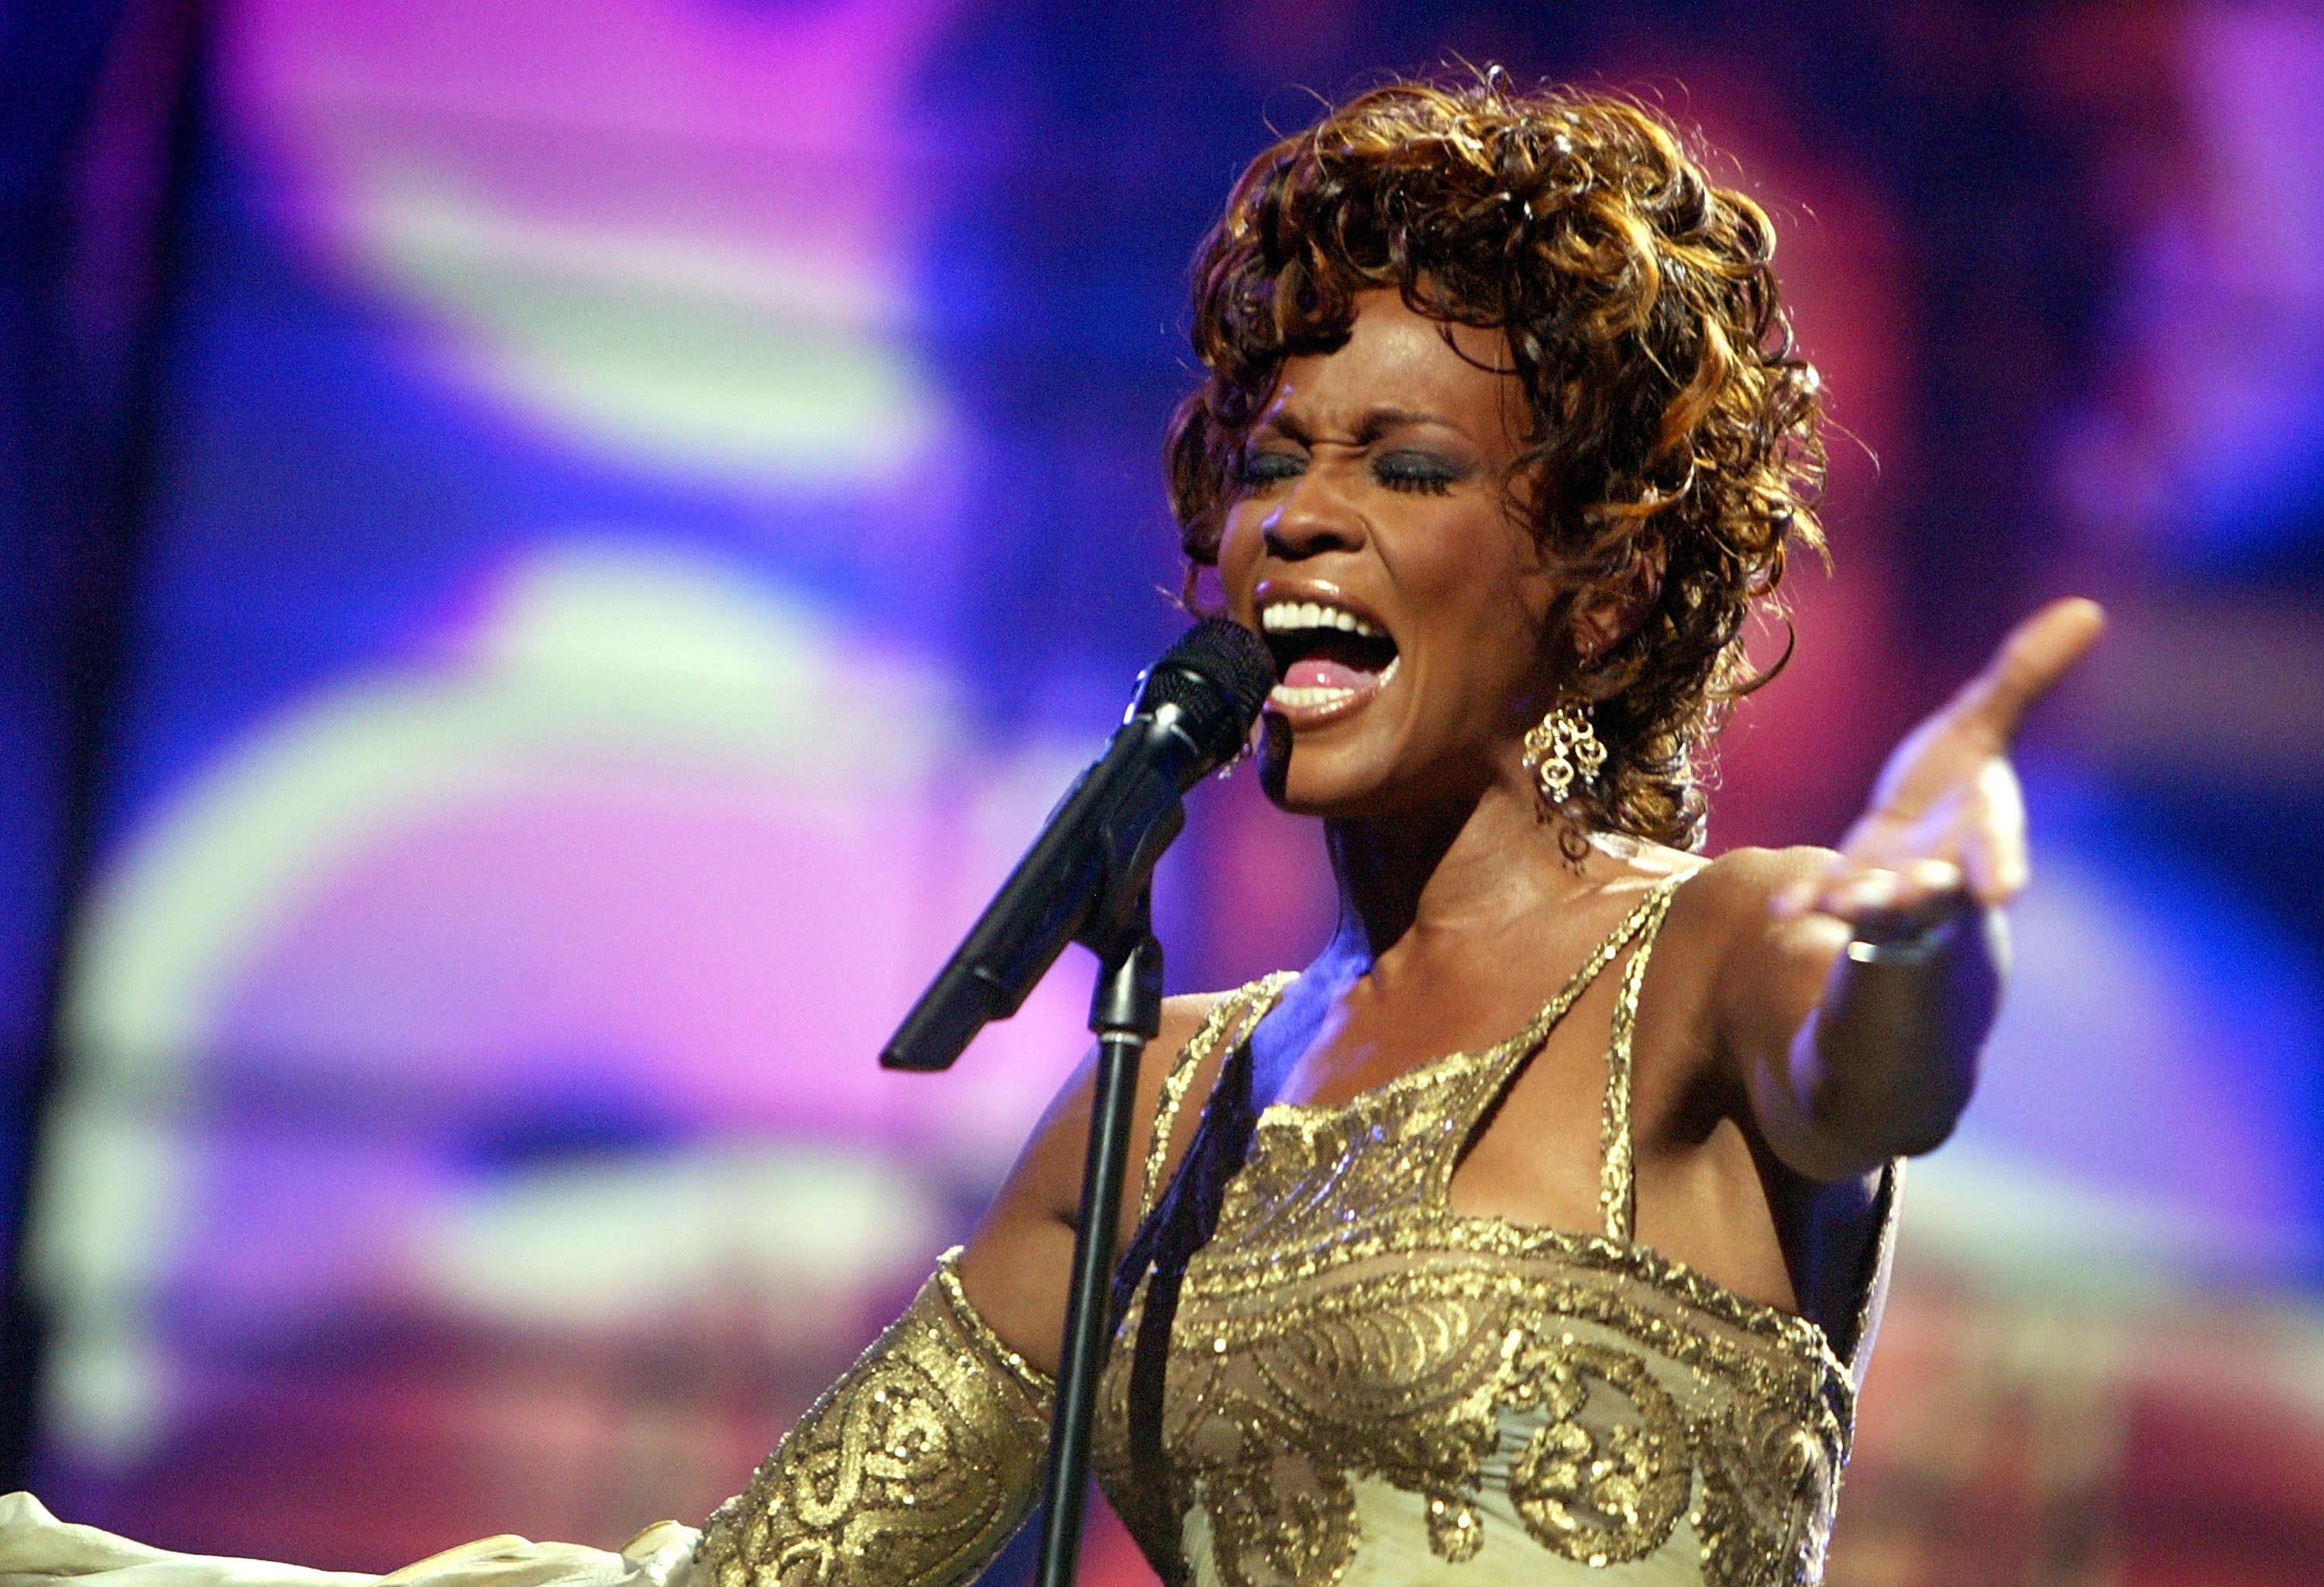 Whitney Houston Has An Undeniable Legacy And Had One Of The Best Voices In Music She Holds Record As Most Awarded Female Artist All Time